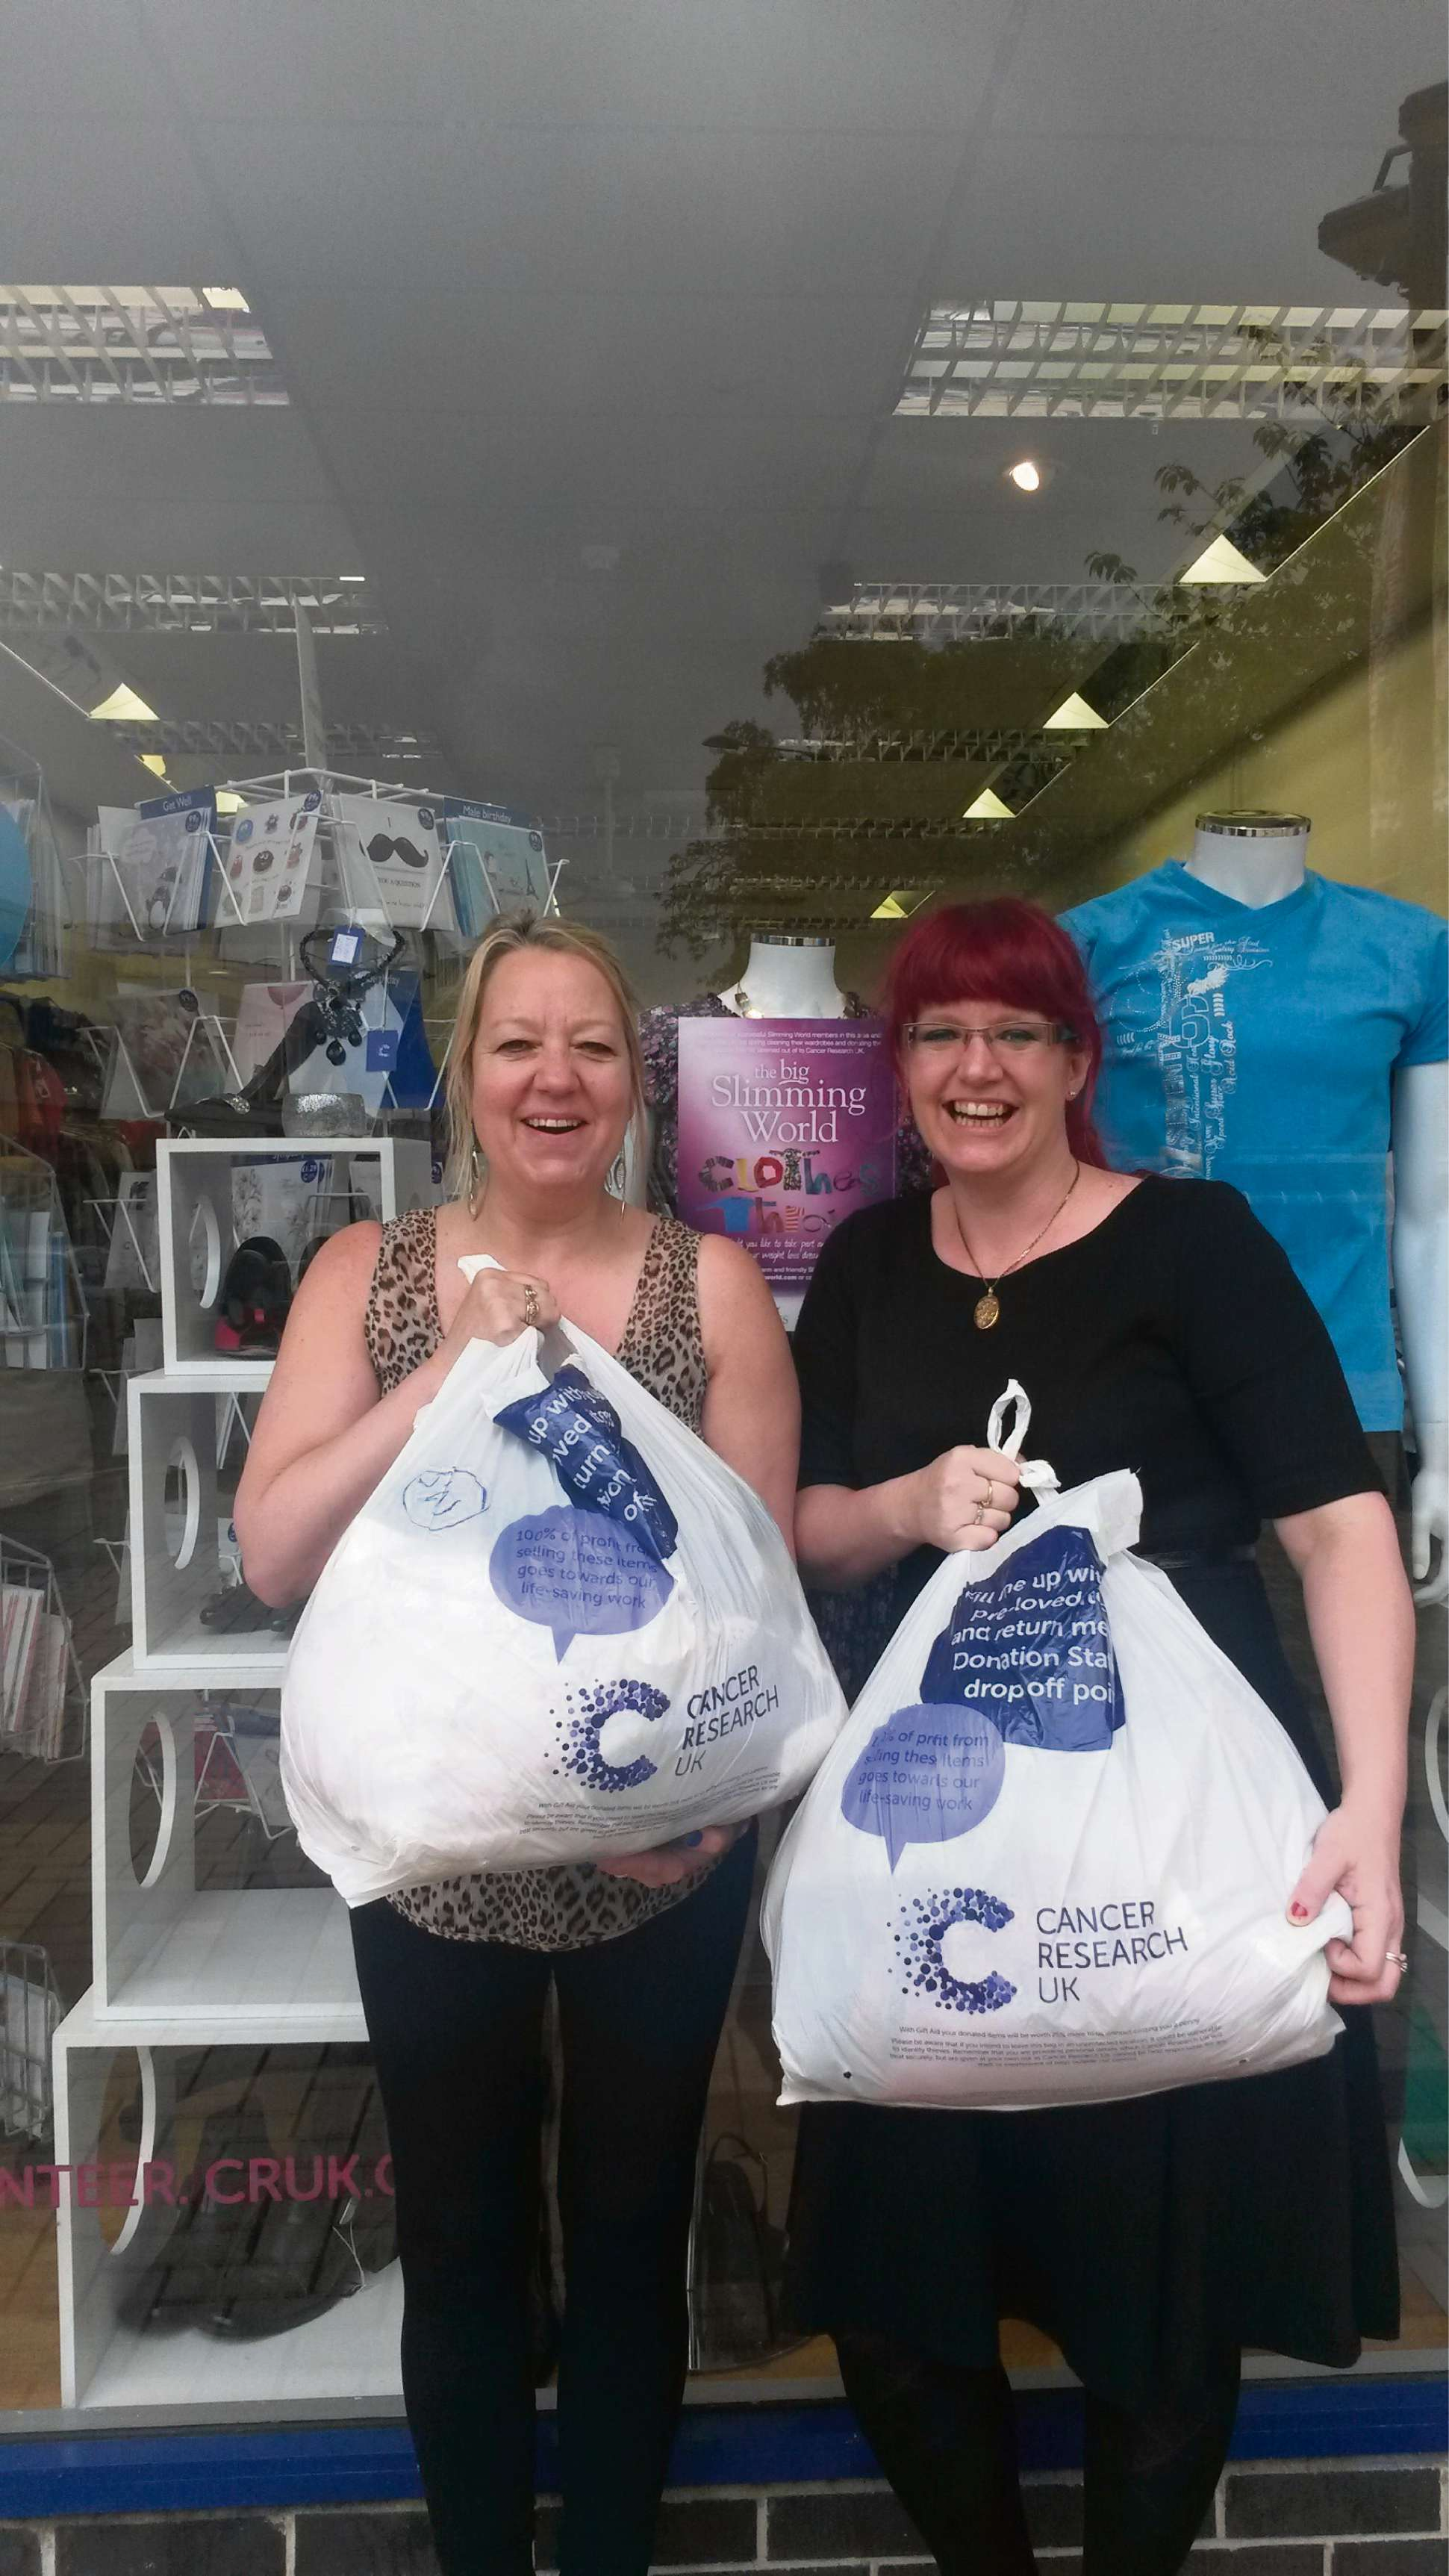 Jeanette Boyle, left, of Cancer Research UK, and Slimming World consultant Carla Weatherill with some of the donated clothes